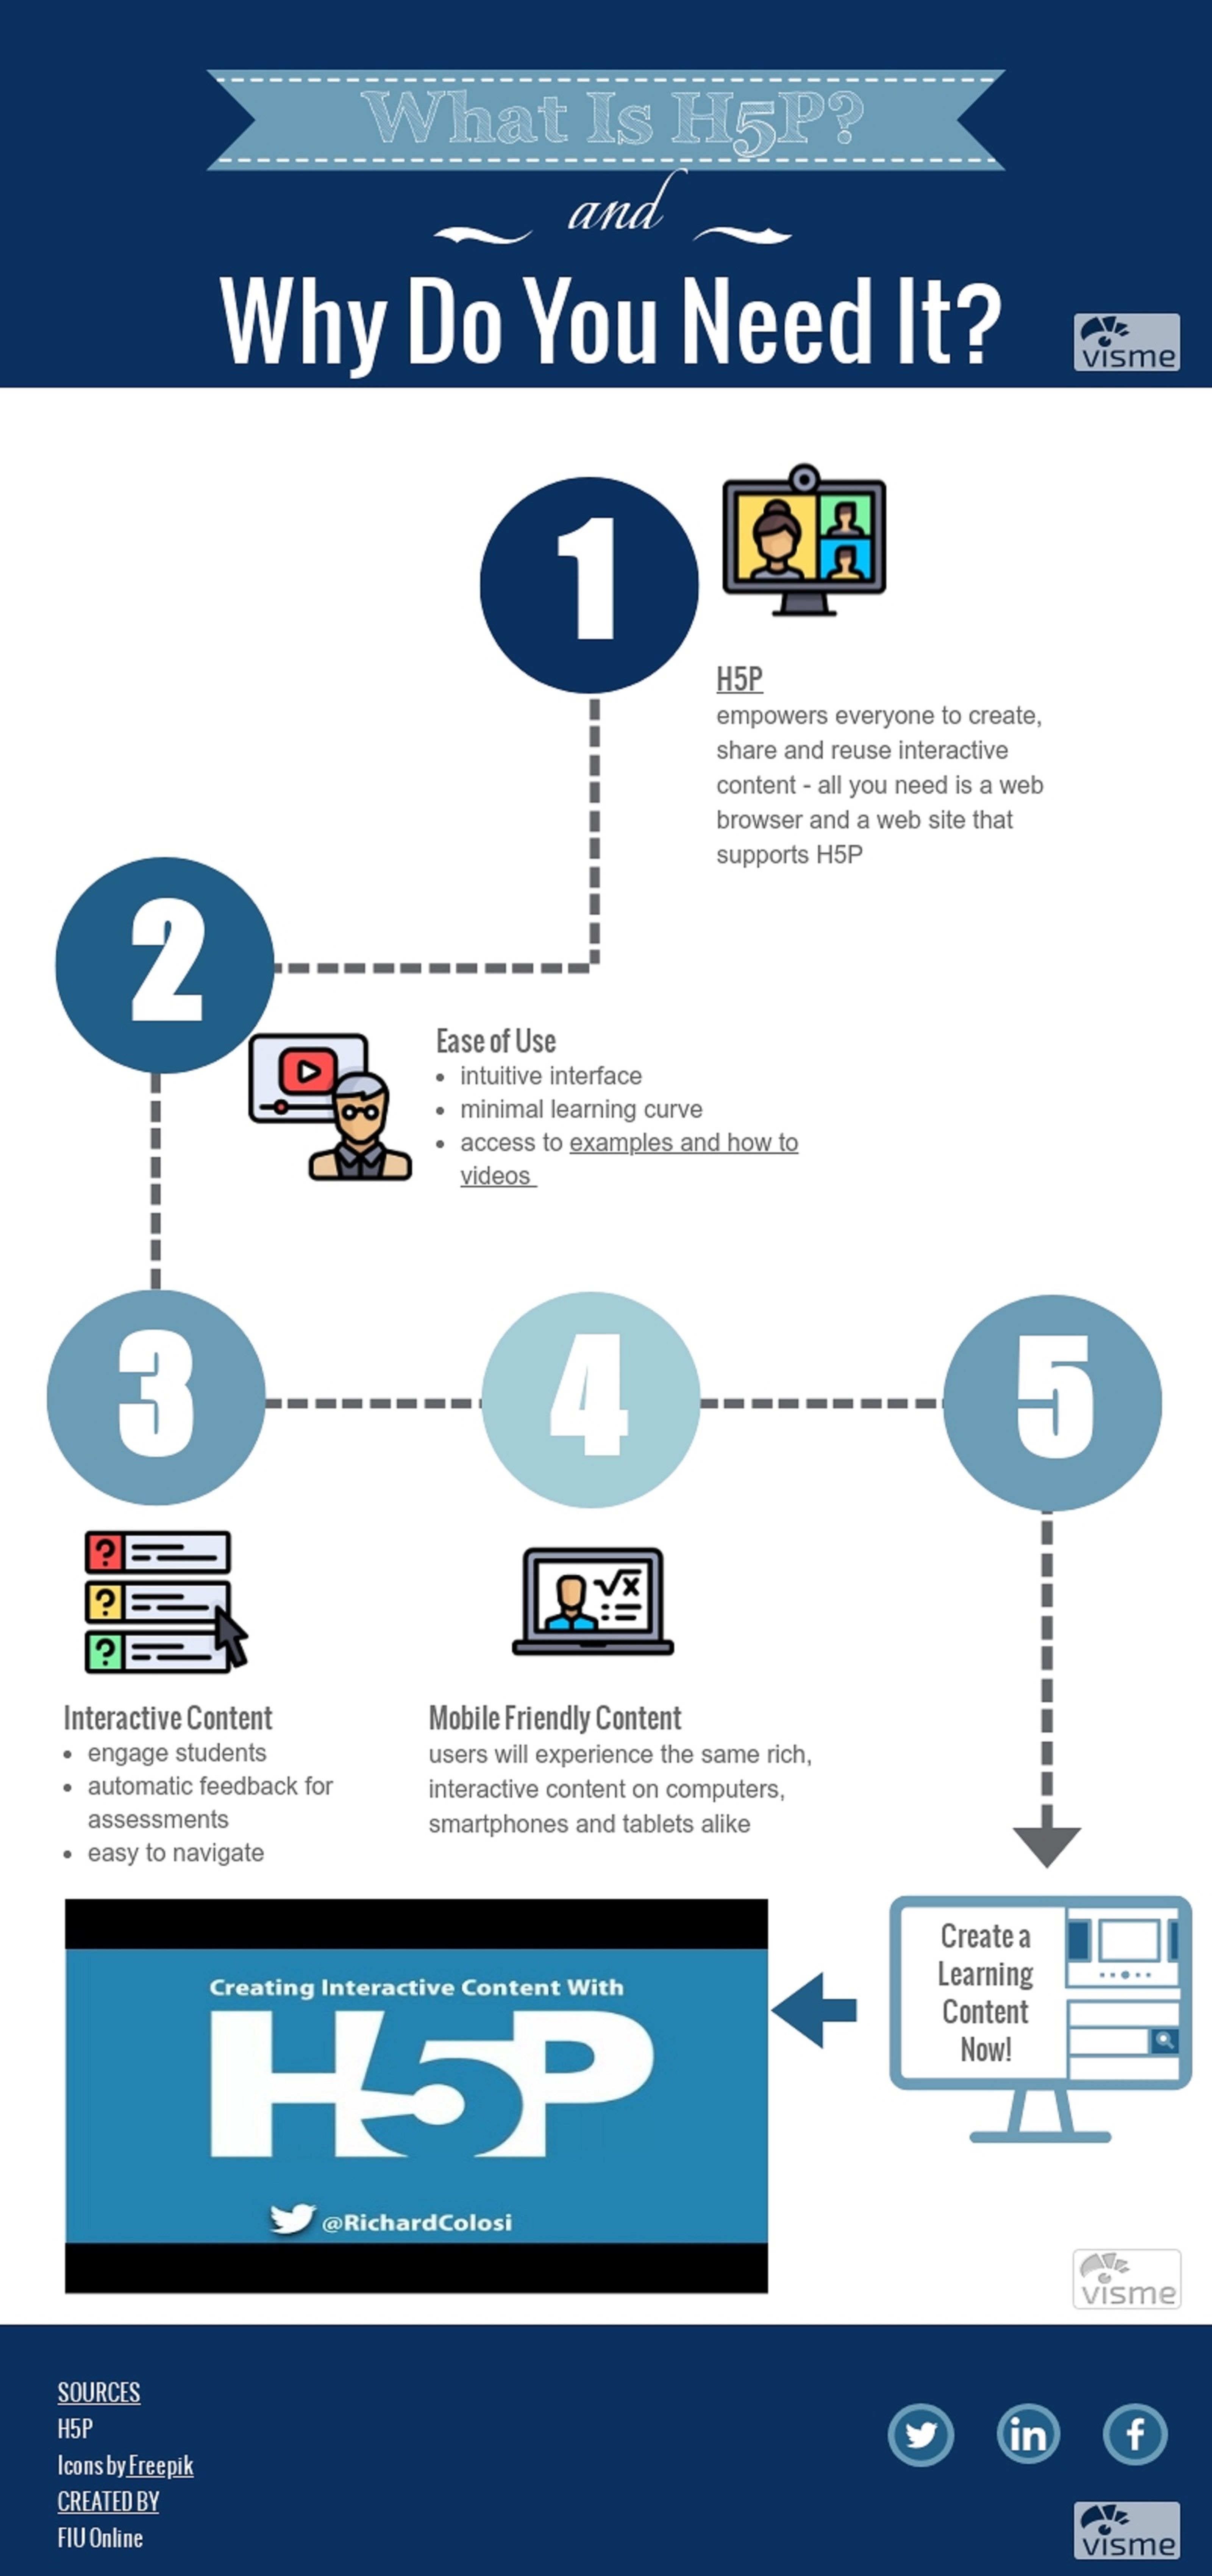 Infographic: What is H5P & Why Do You Need It?